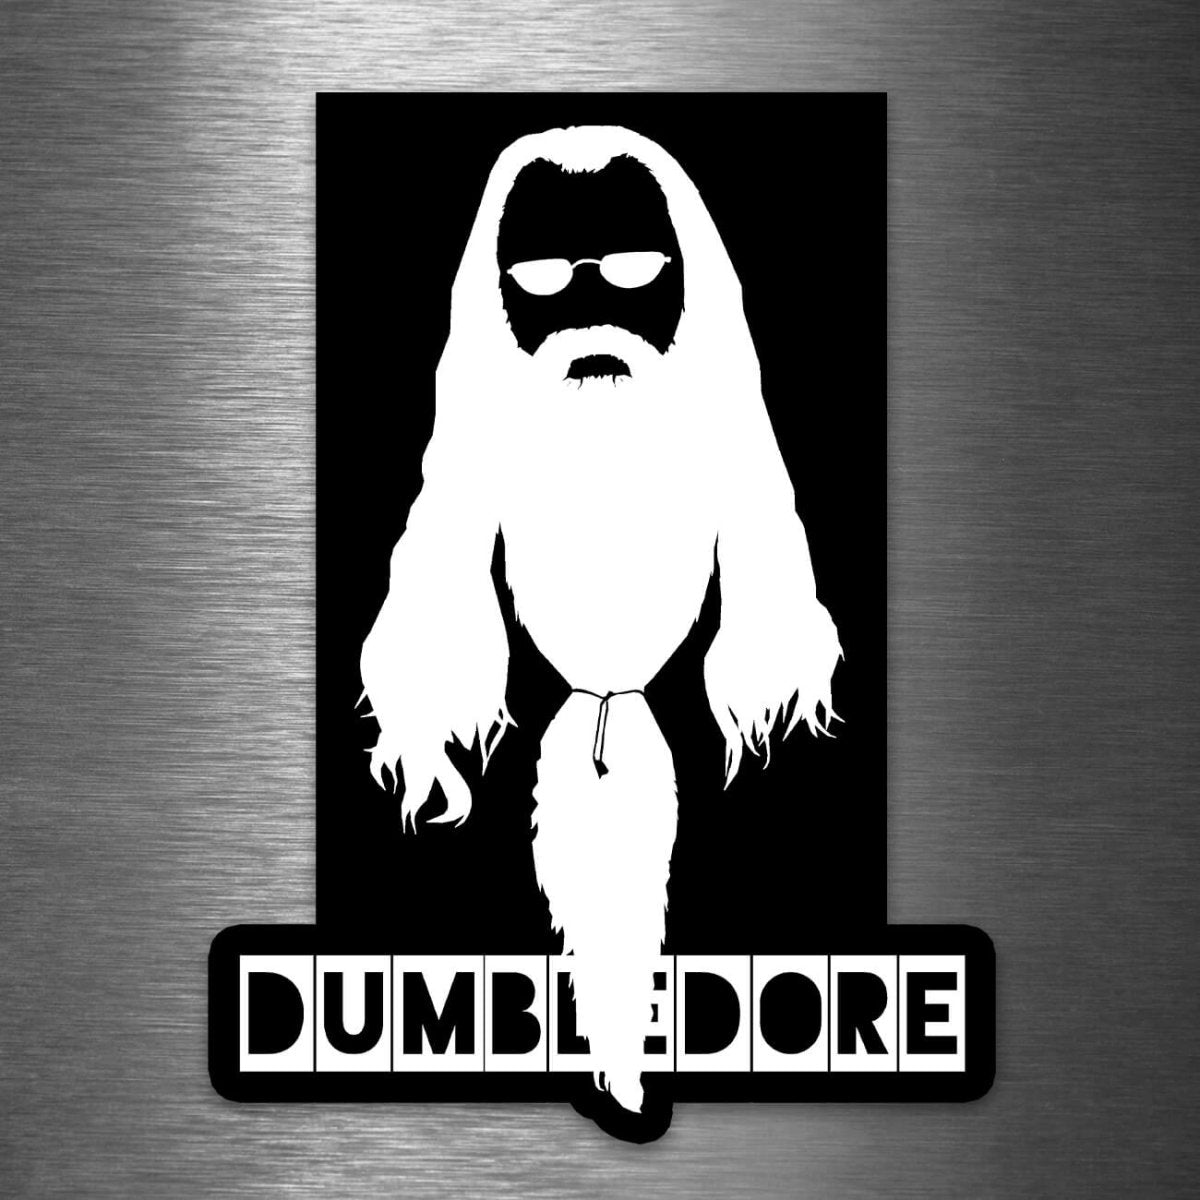 Dumbledore Badass - Vinyl Sticker - Dan Pearce Sticker Shop